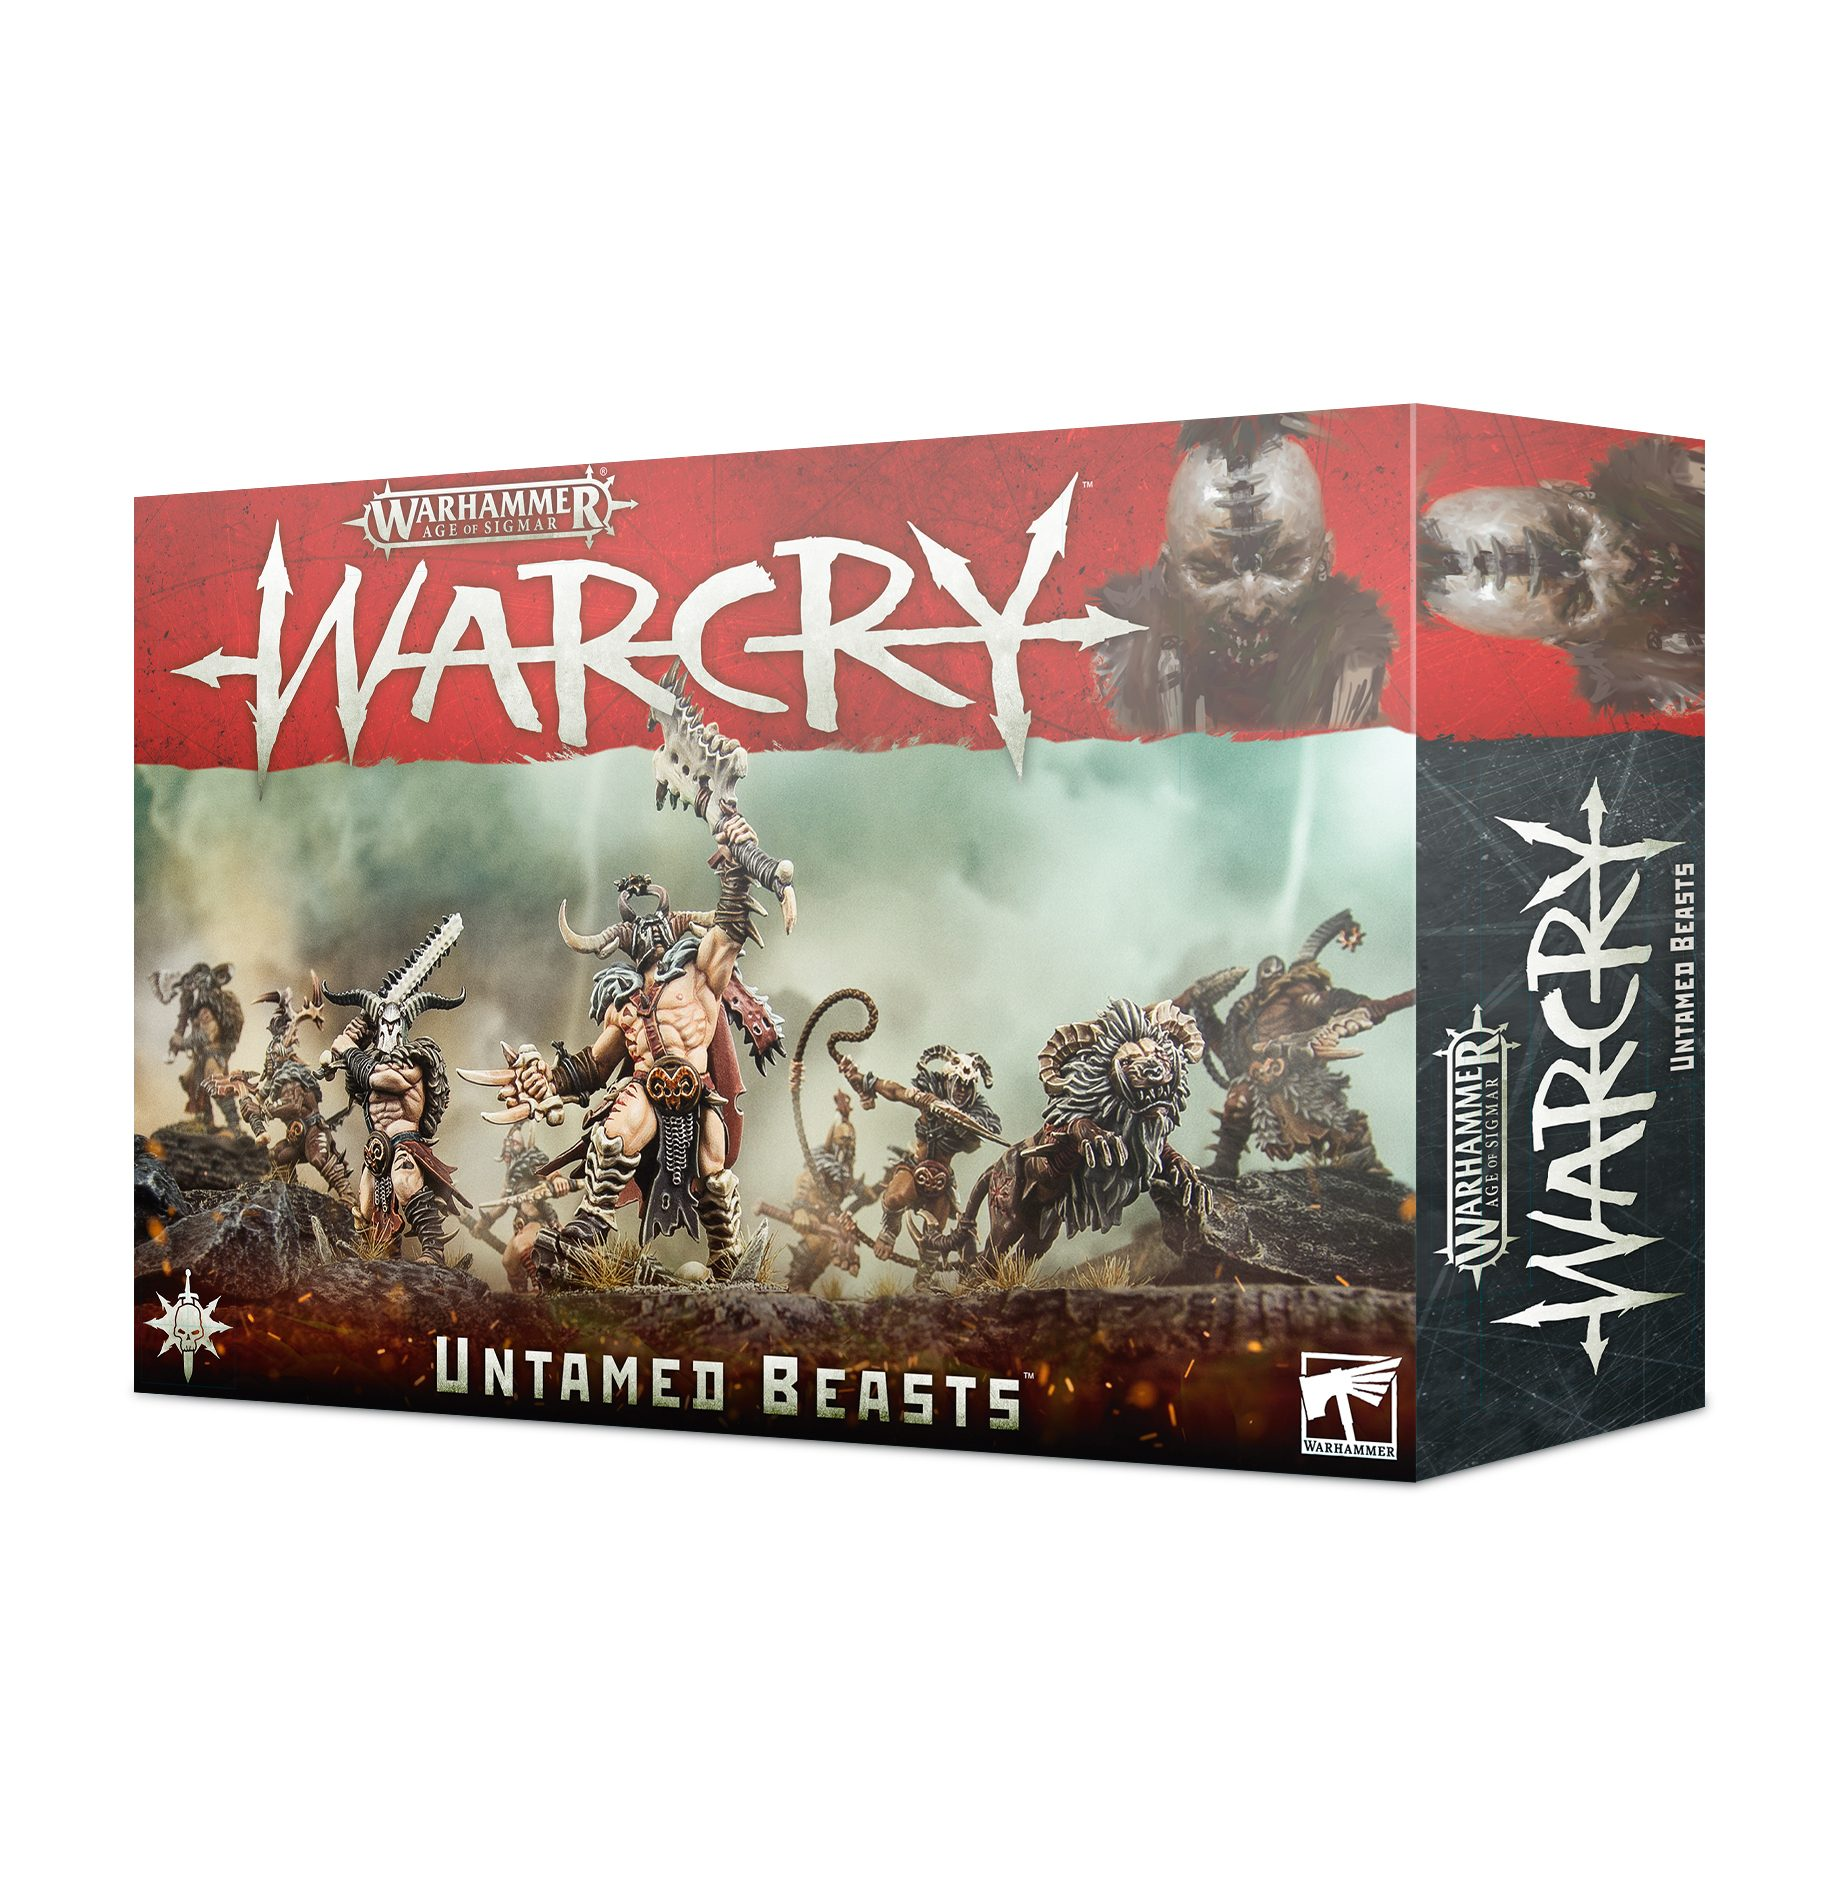 Untamed Beasts, Warcry